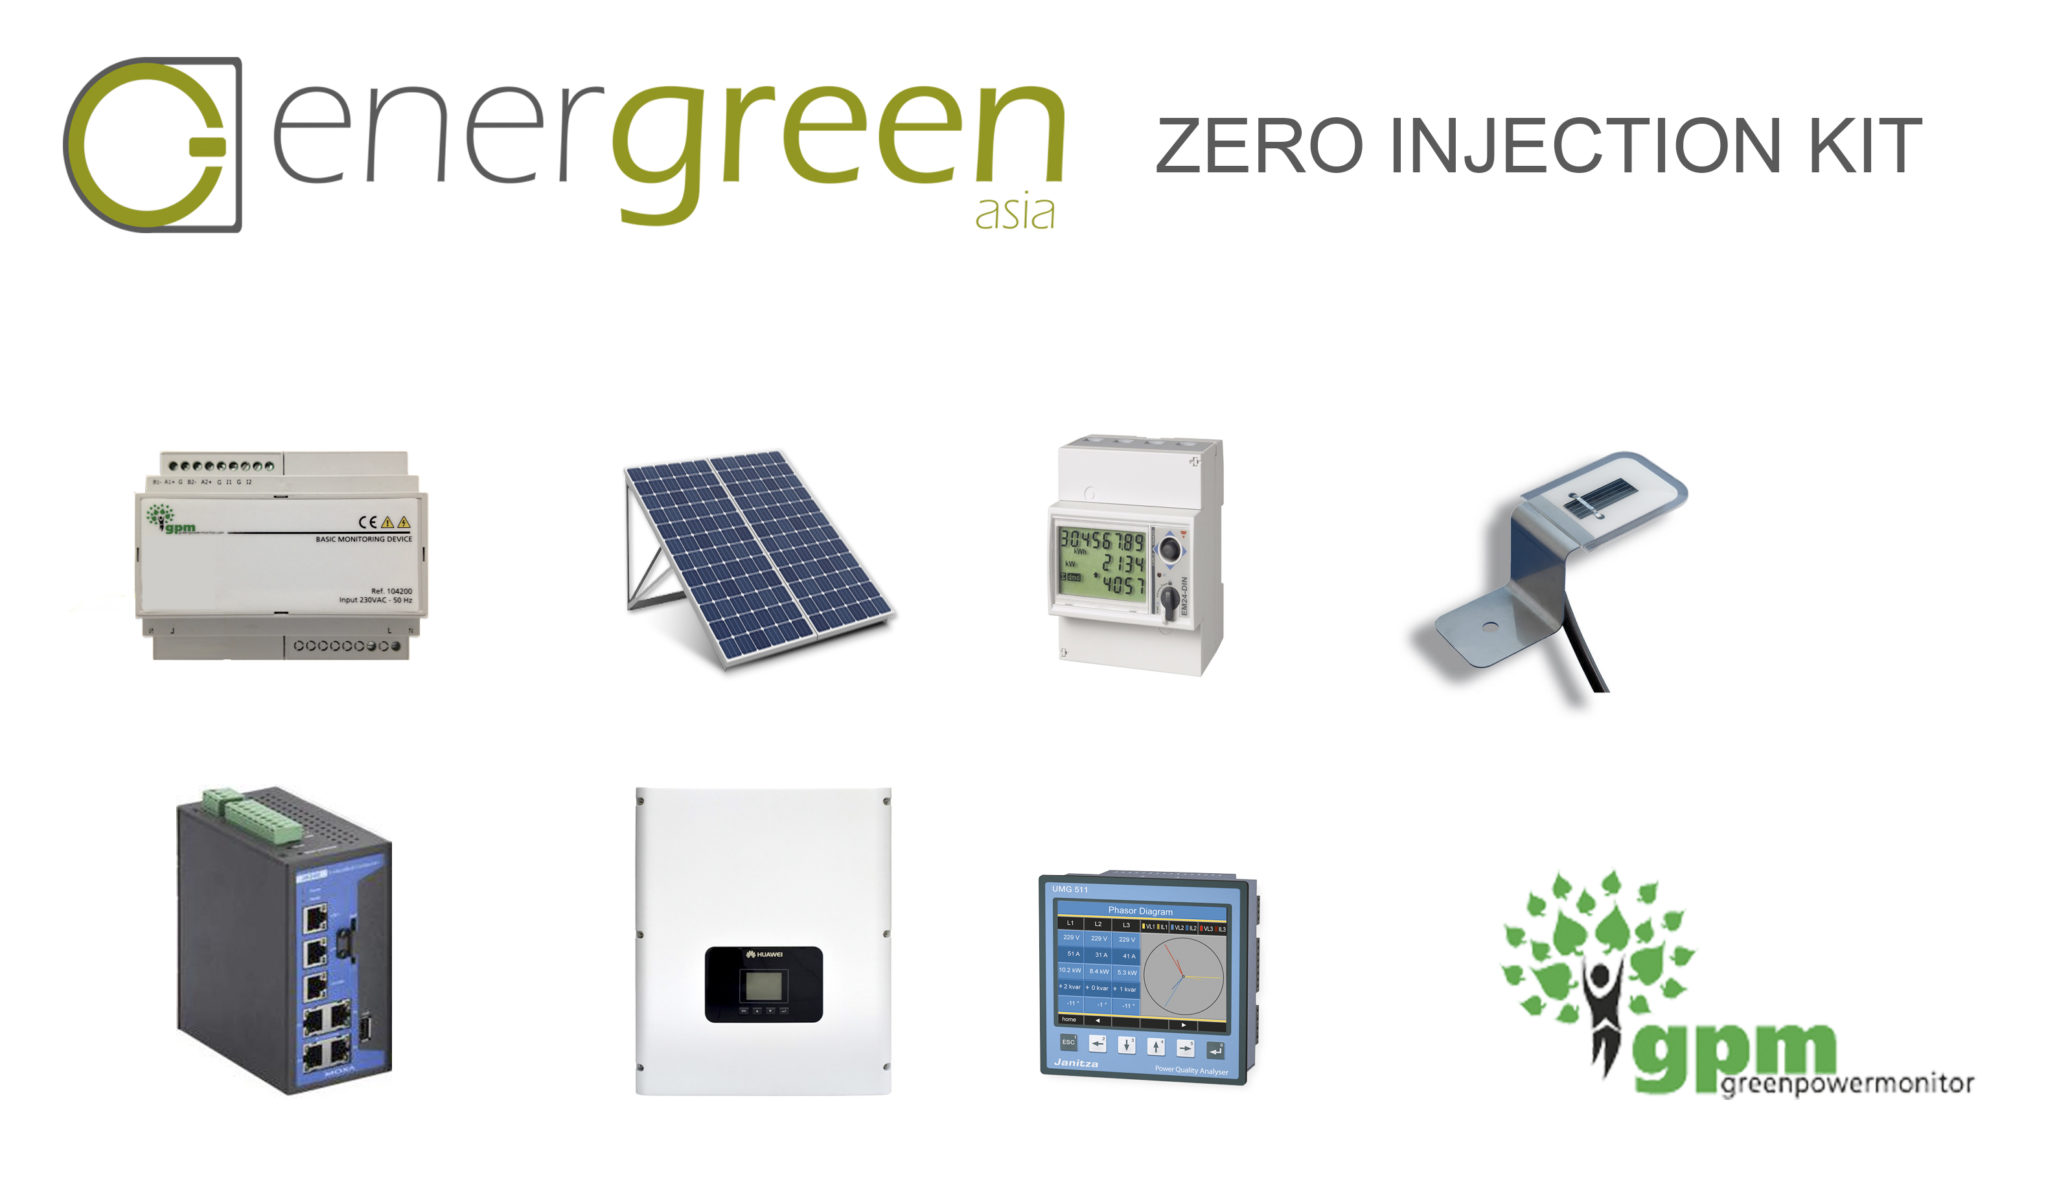 Energreen Asia | Solar cell Thailand | Renewable energy